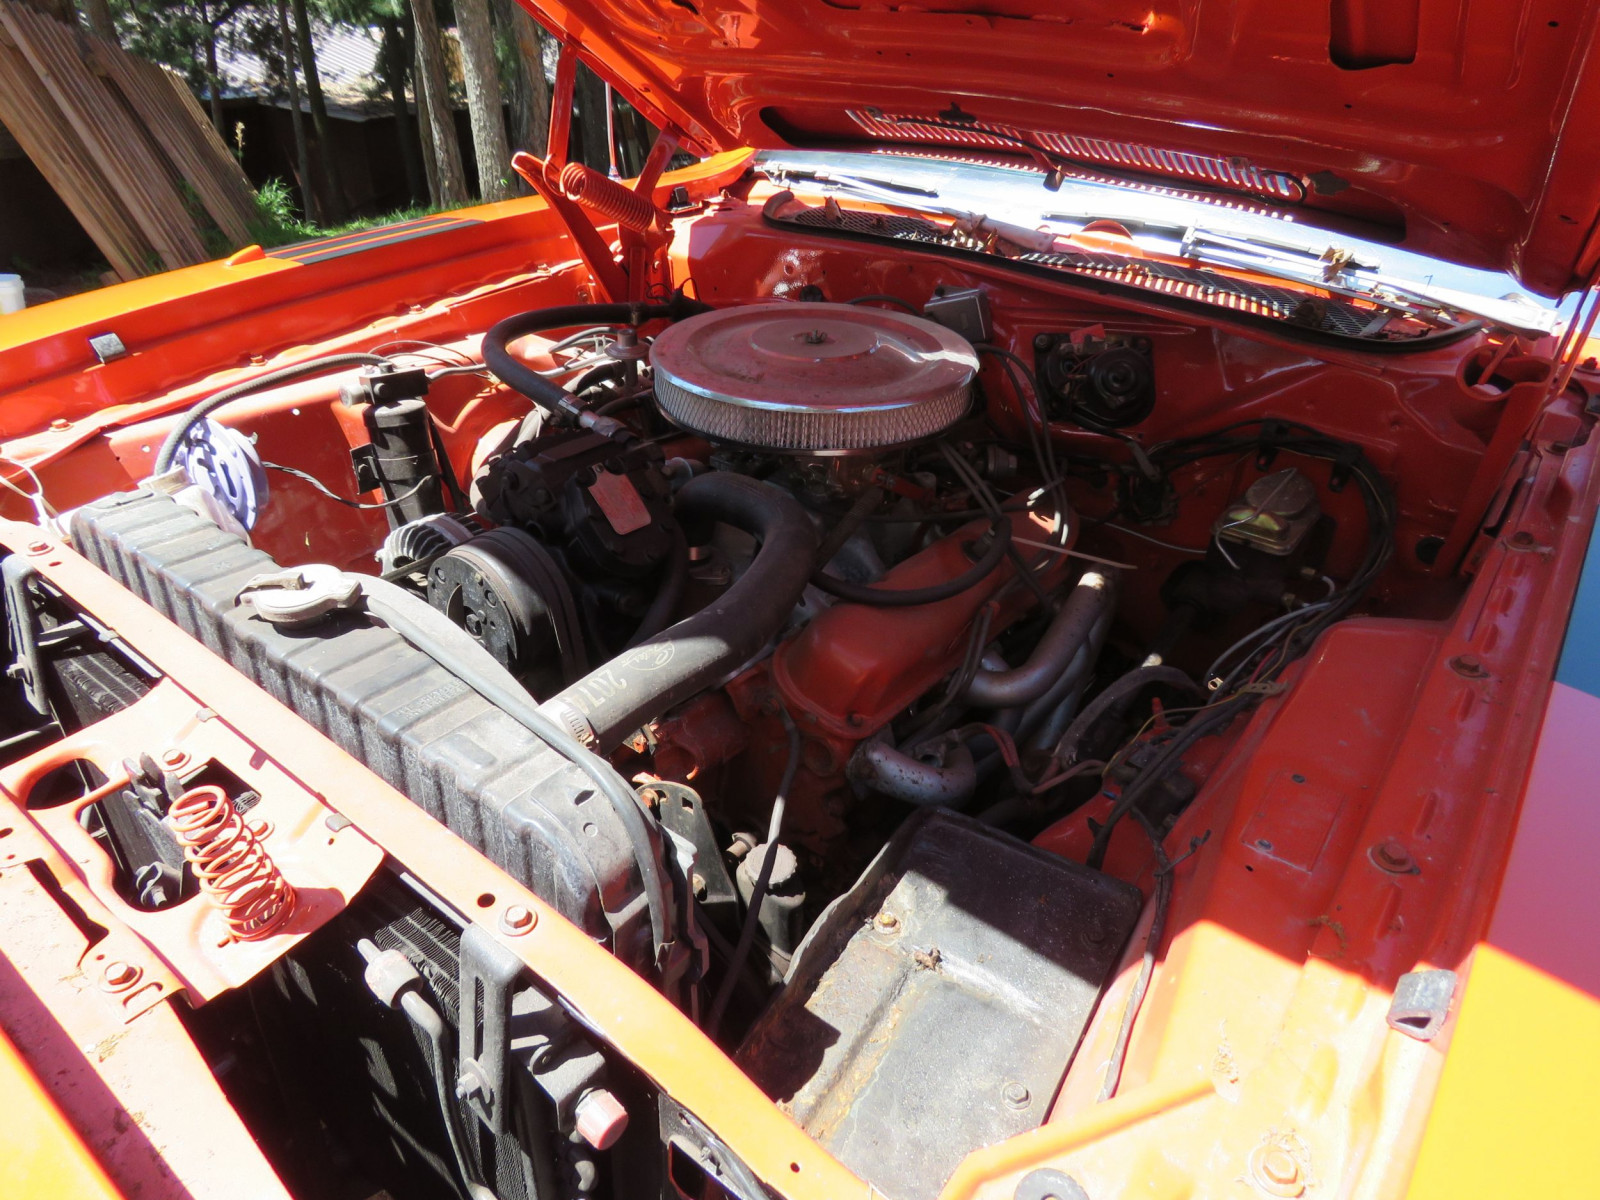 1971 Plymouth Satellite 2dr HT - Image 14